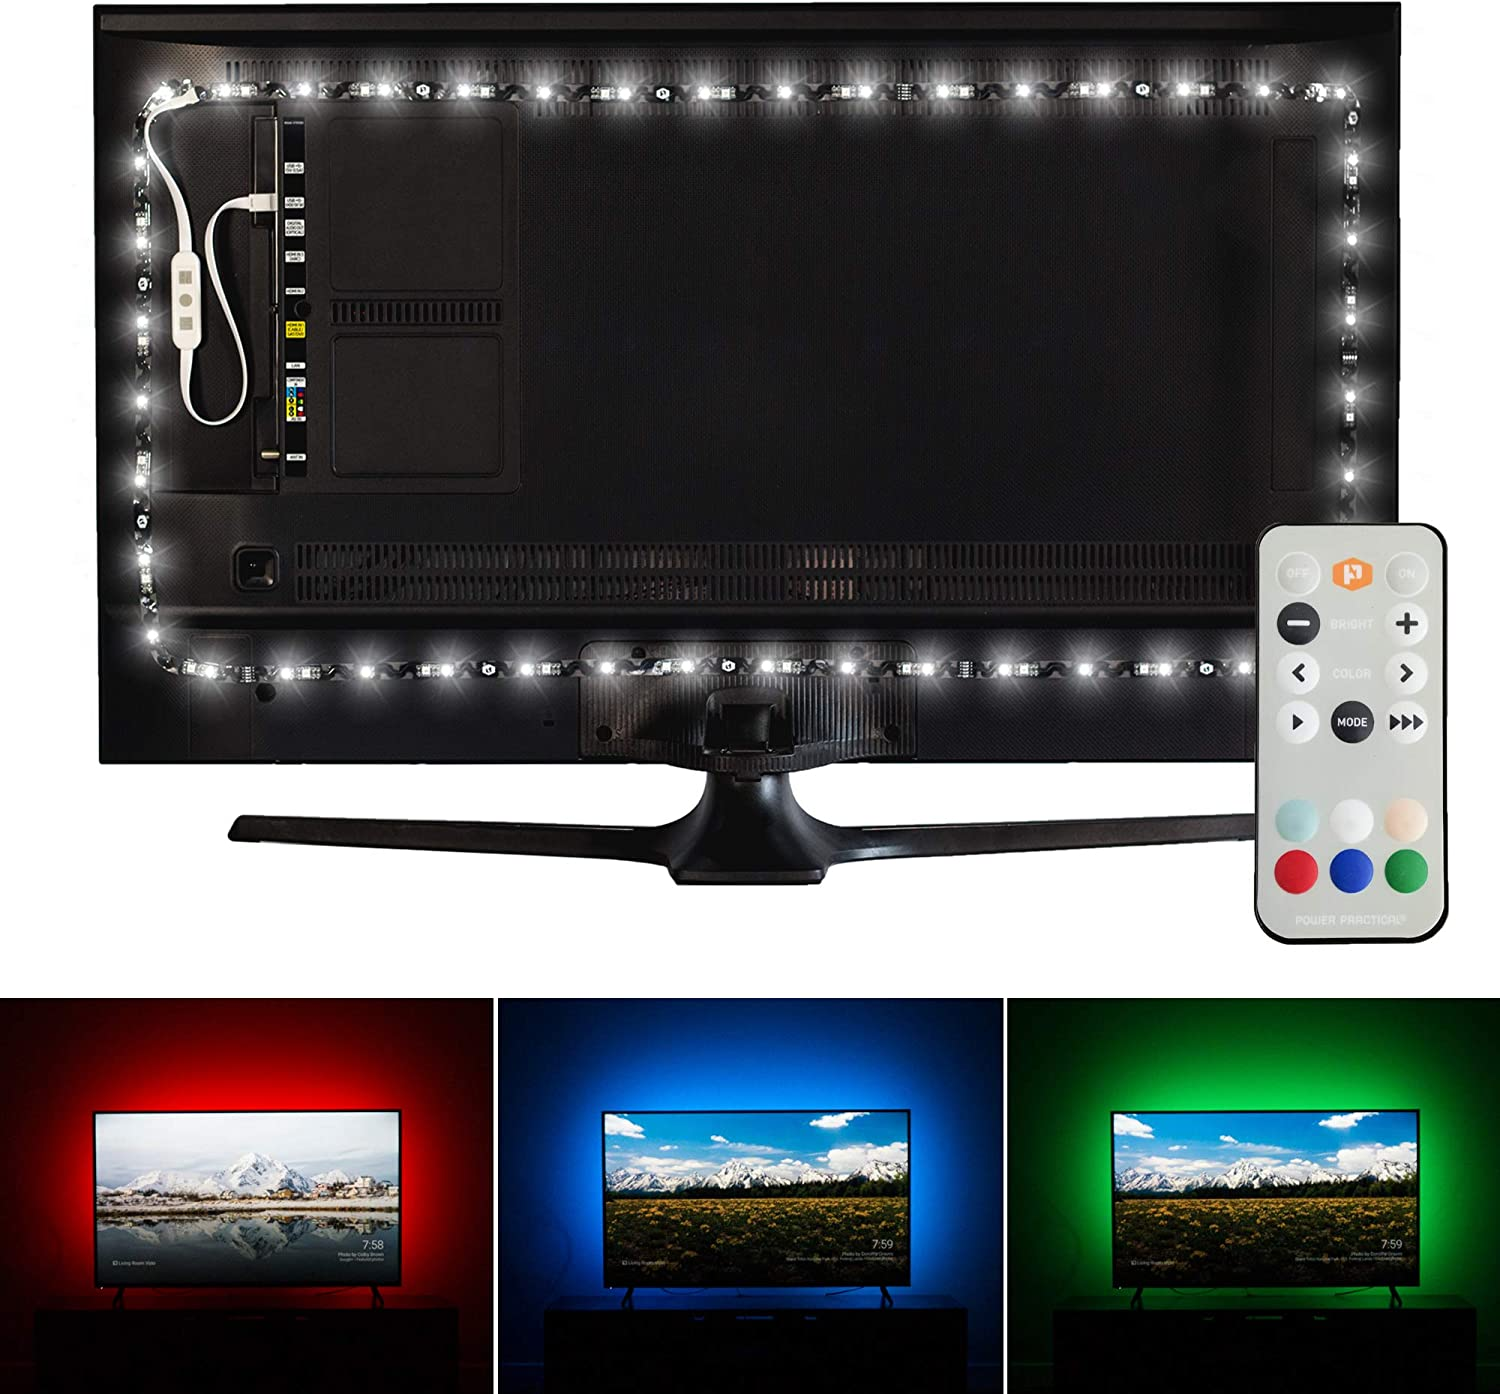 Luminoodle Professional Bias Lighting for HDTV | fits 30